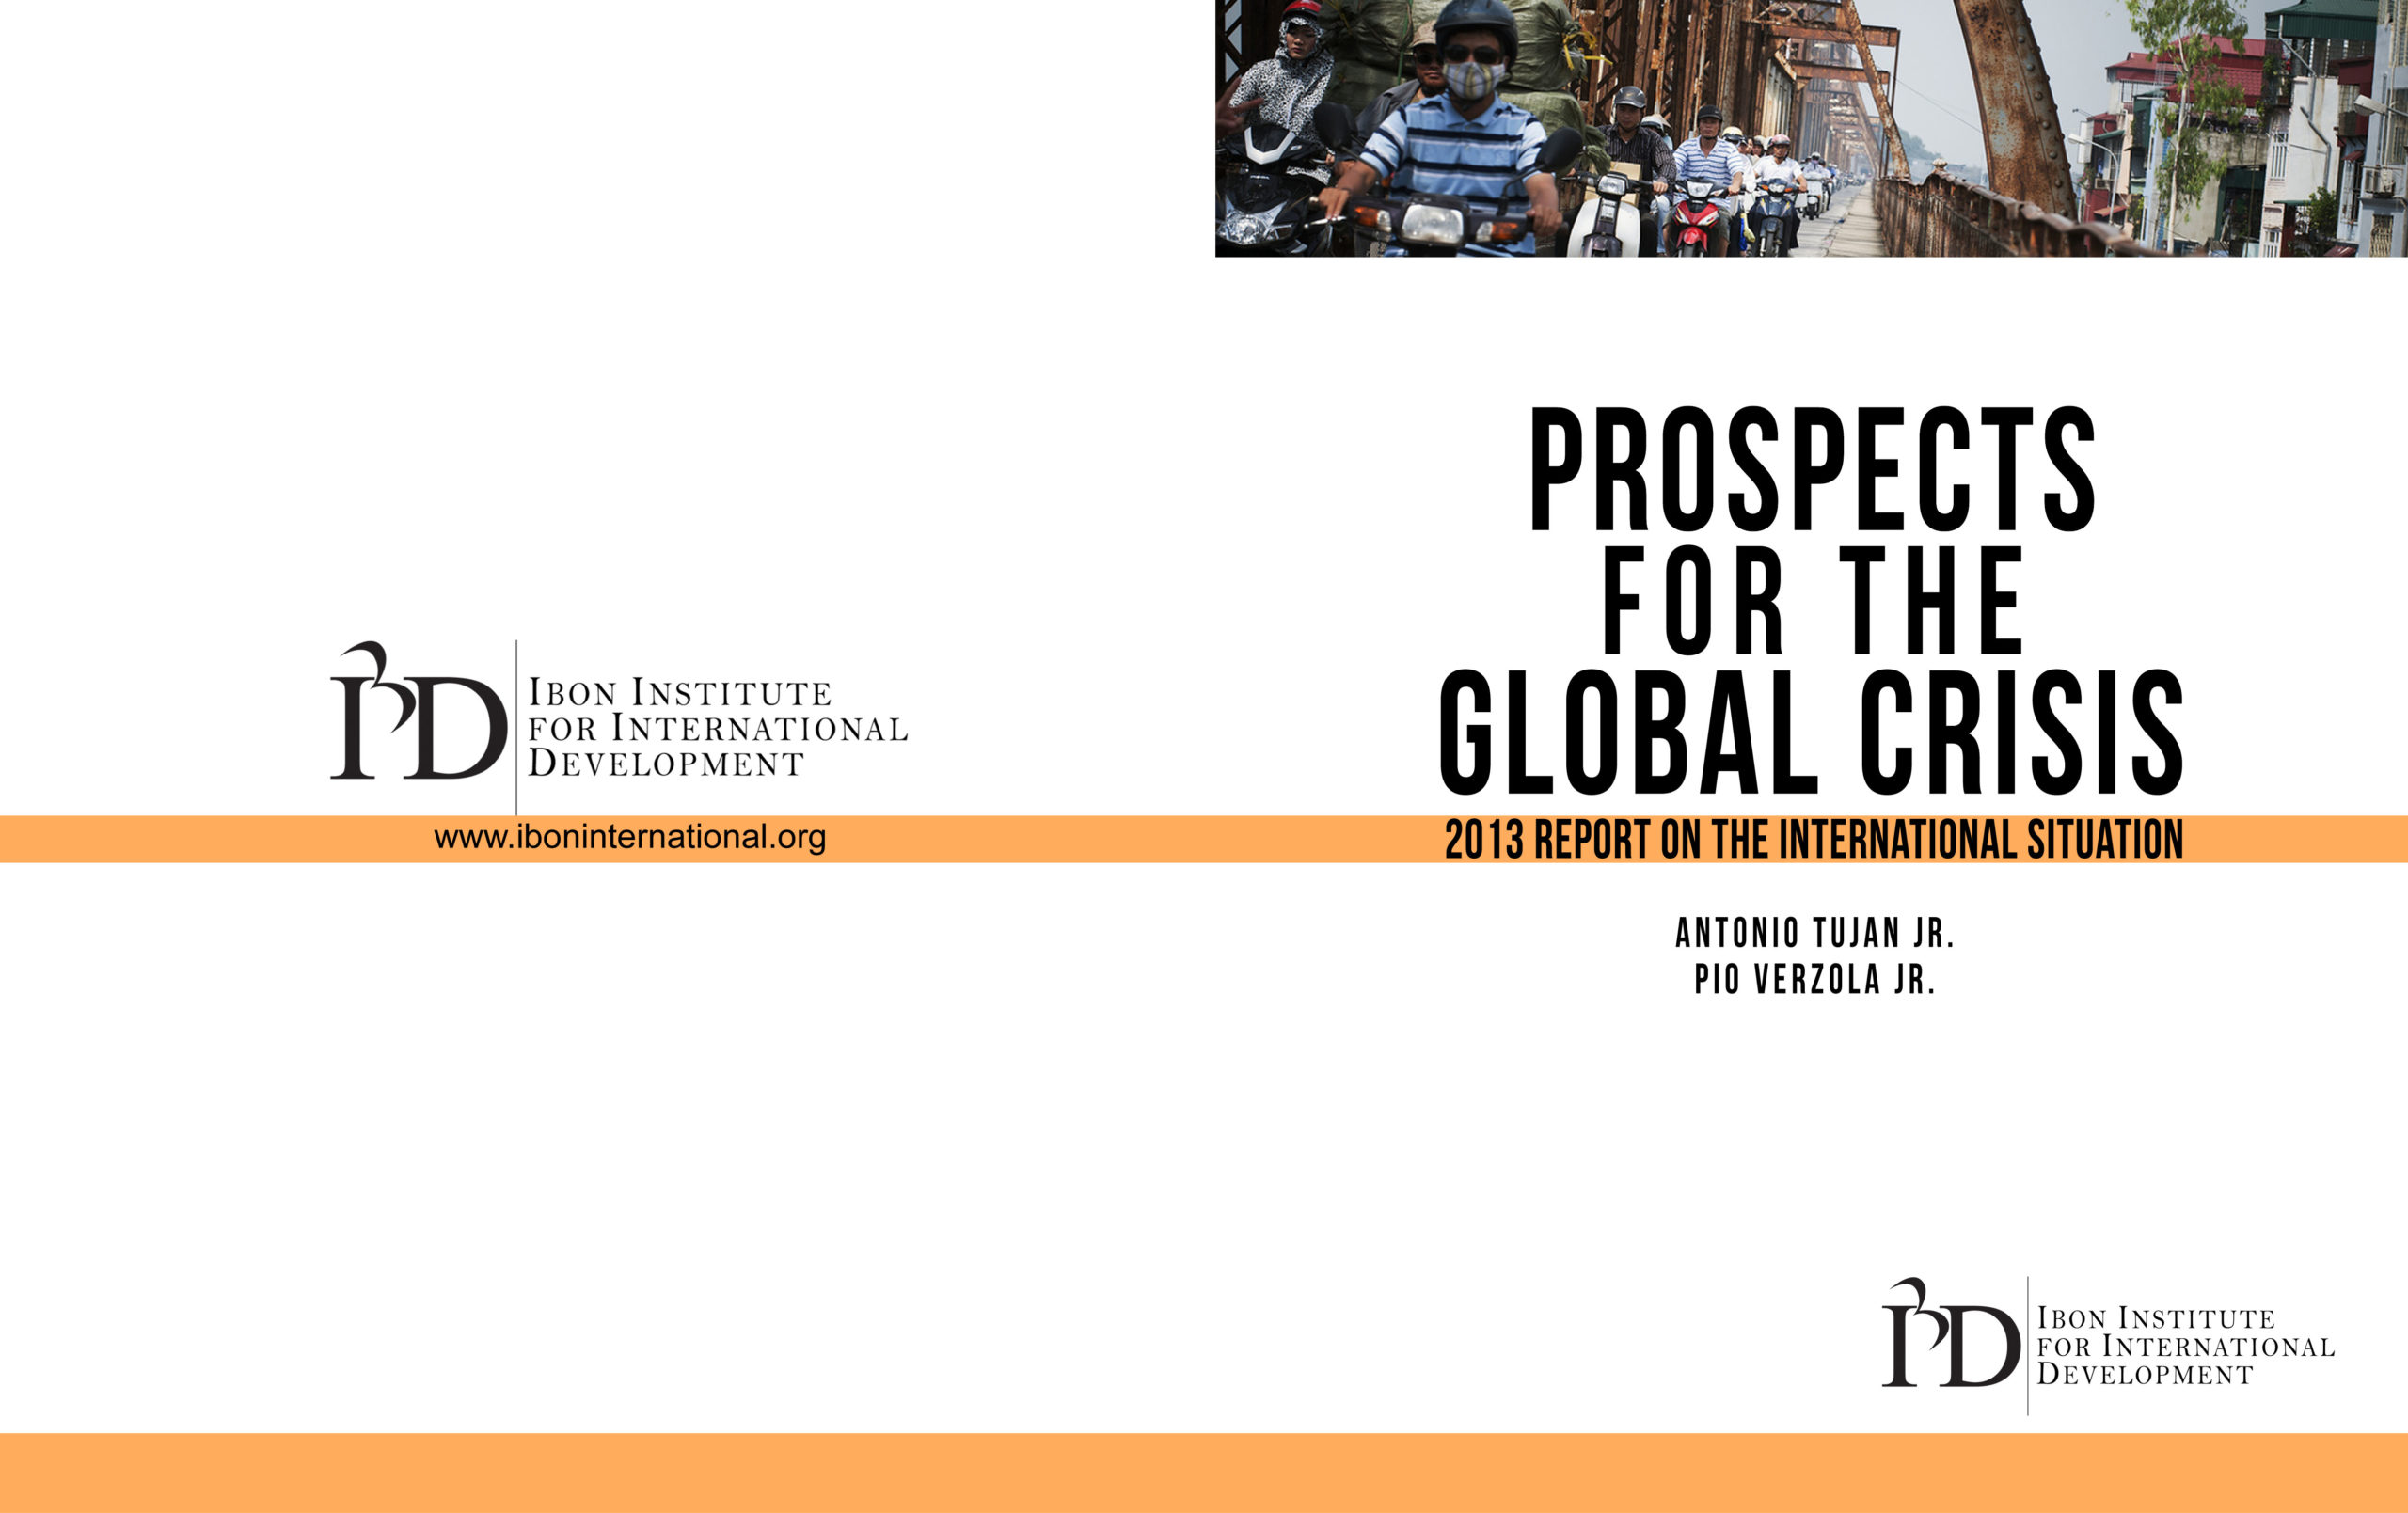 Prospects for the Global Crisis: 2013 Report on the International Situation